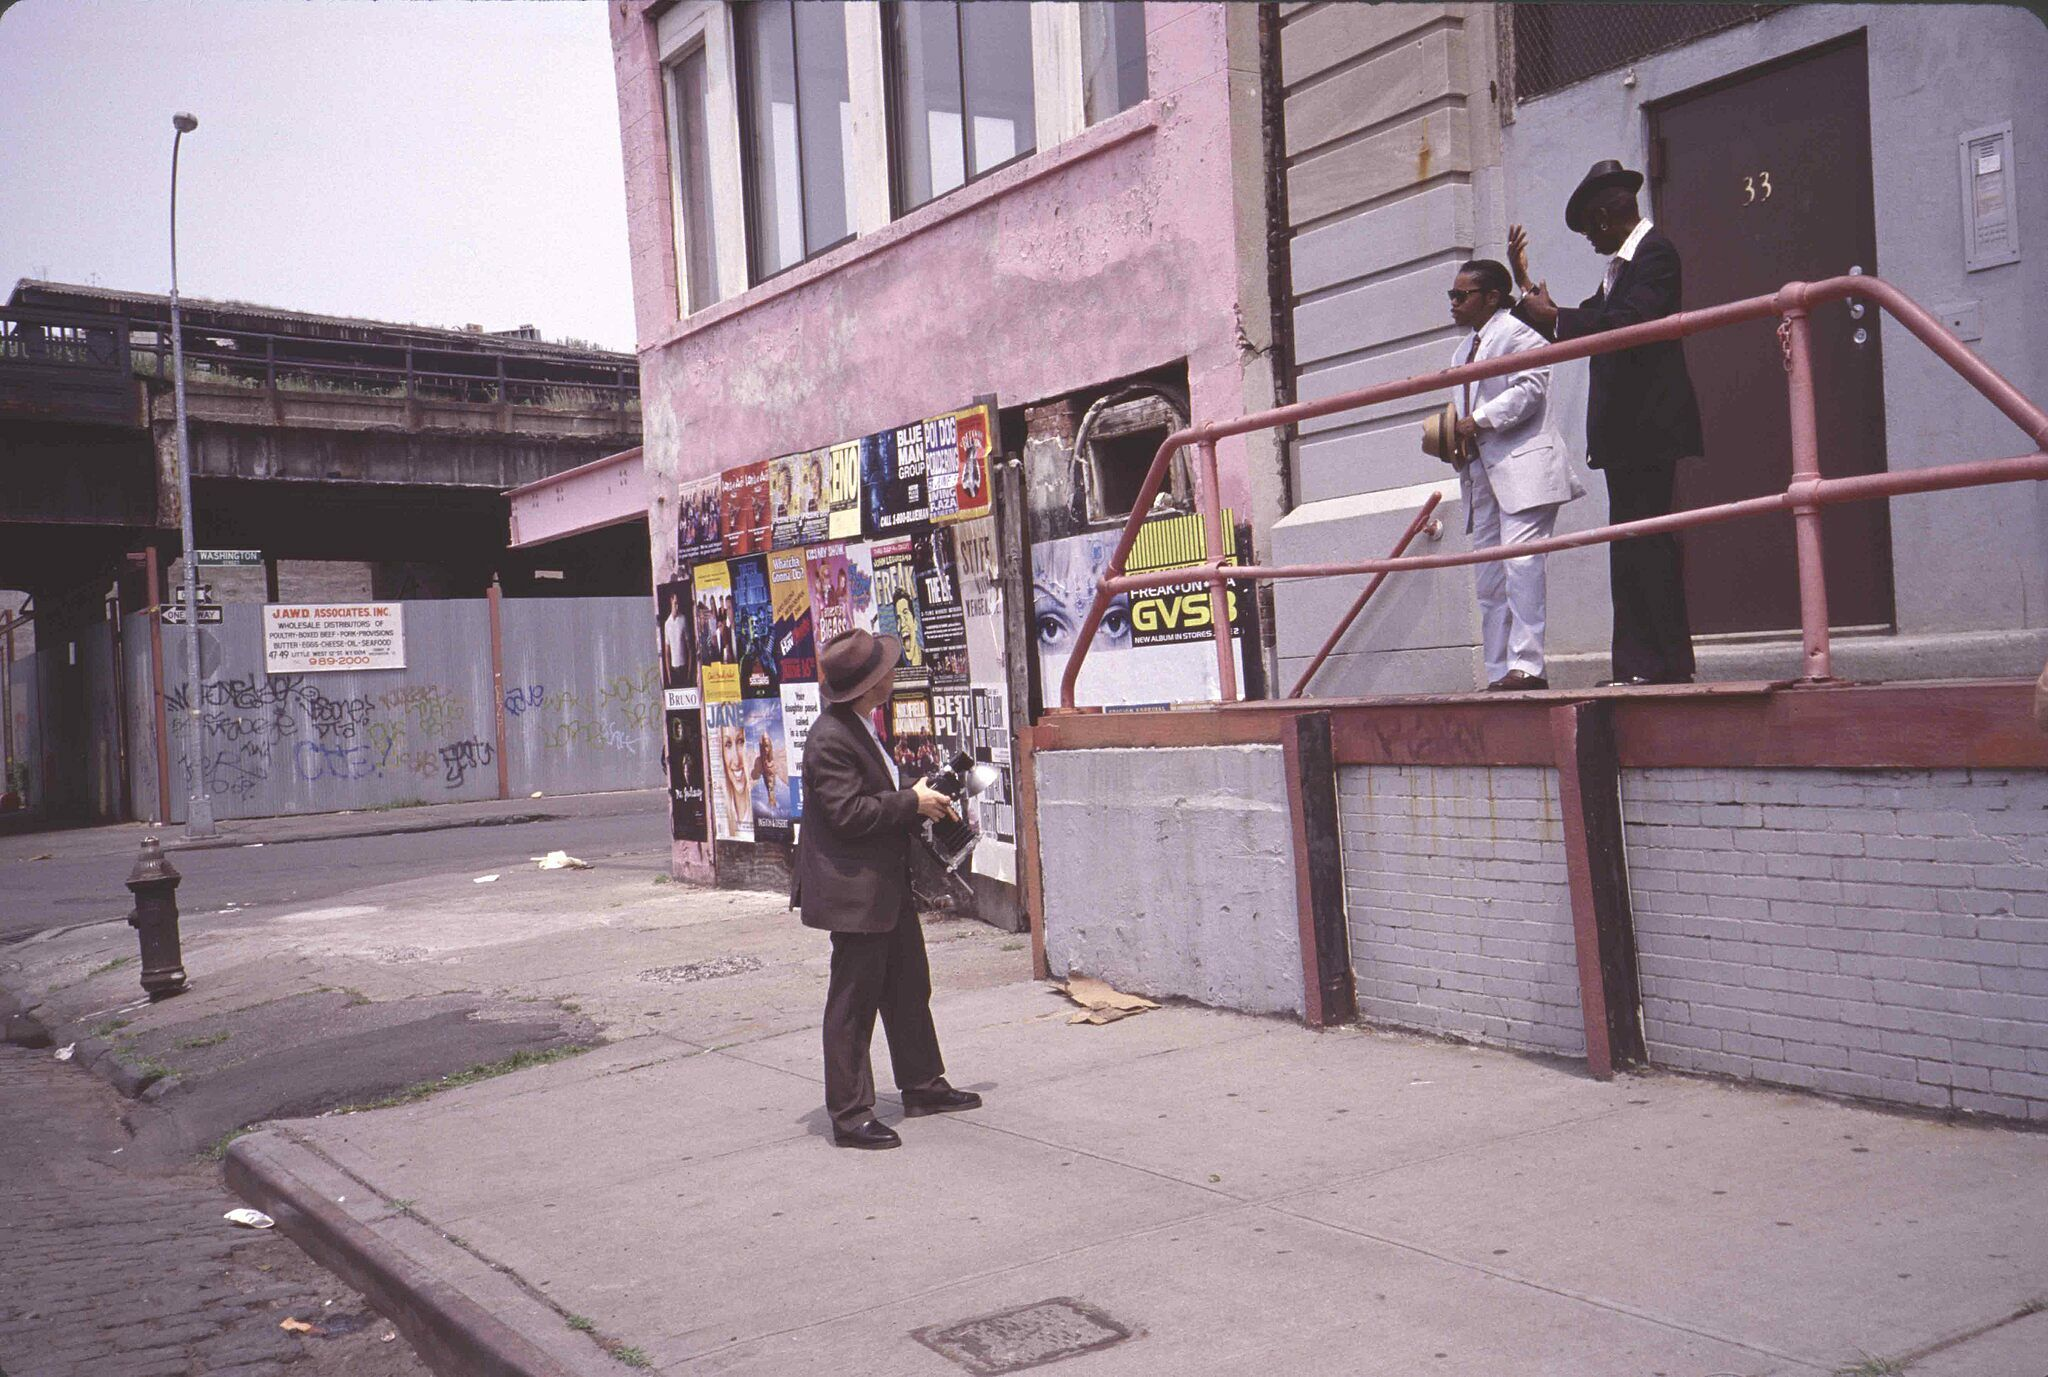 A photograph of two men on a platform looking at a man below them on the street holding a camera.